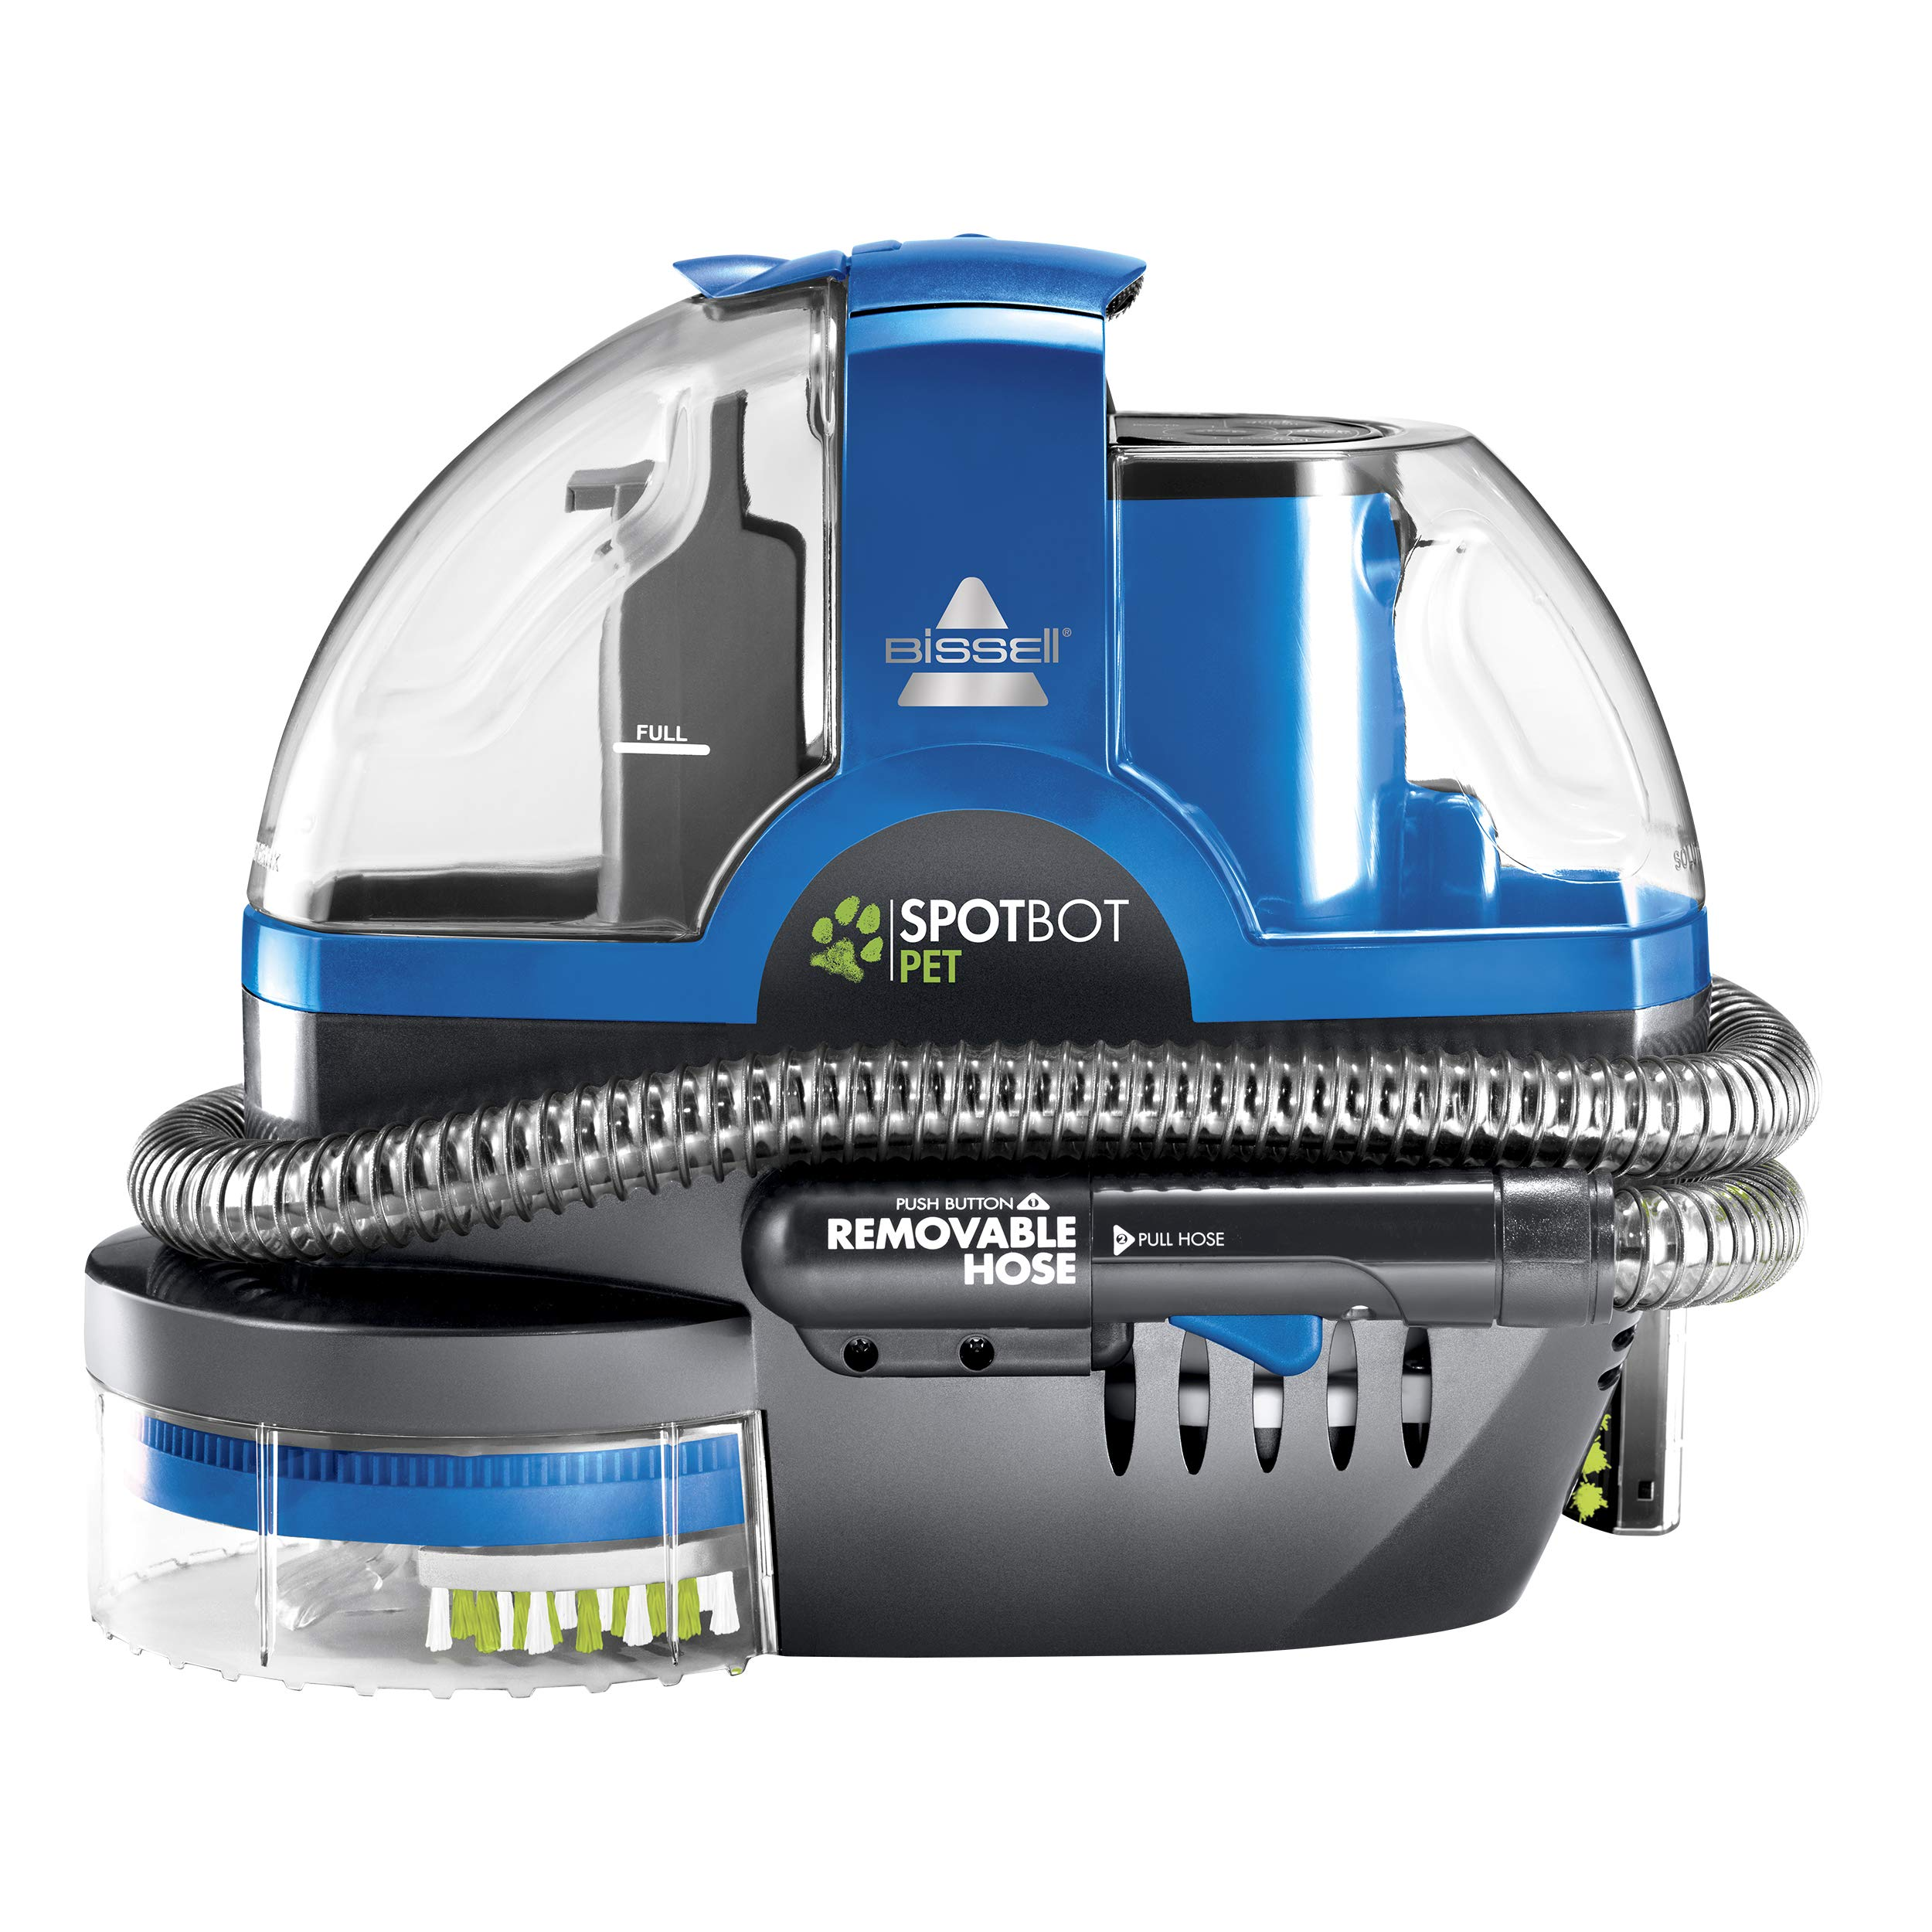 Bissell SpotBot Pet handsfree Spot and Stain Portable Deep Cleaner, Blue, 2117A by Bissell